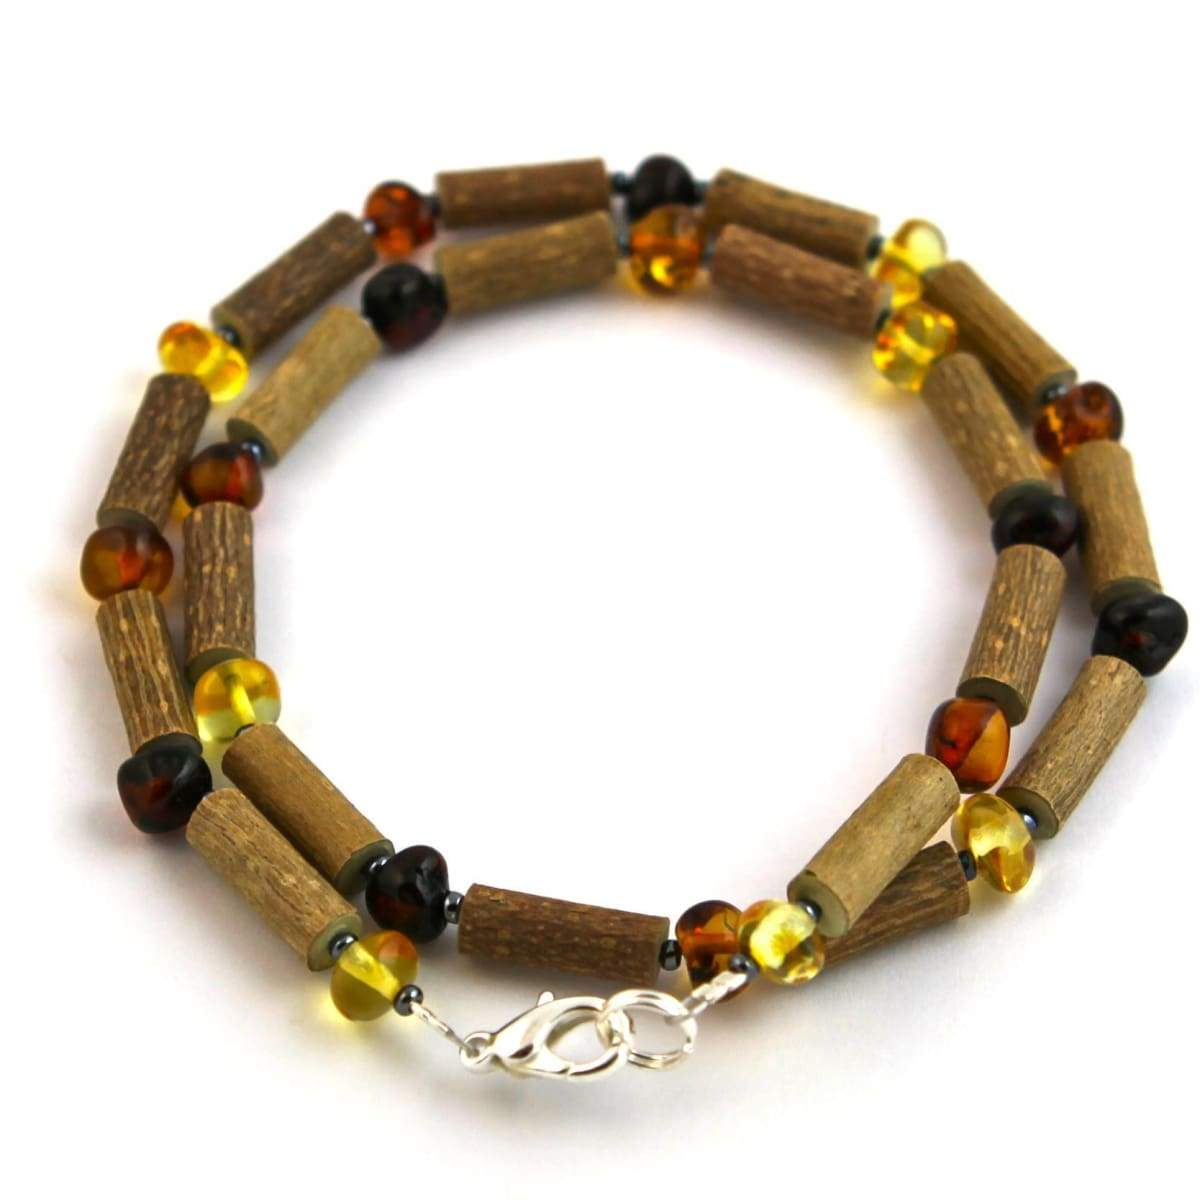 Hazel-Amber Multicolored - 16 Necklace - Lobster Claw Clasp - Hazelwood & Baltic Amber Jewelry